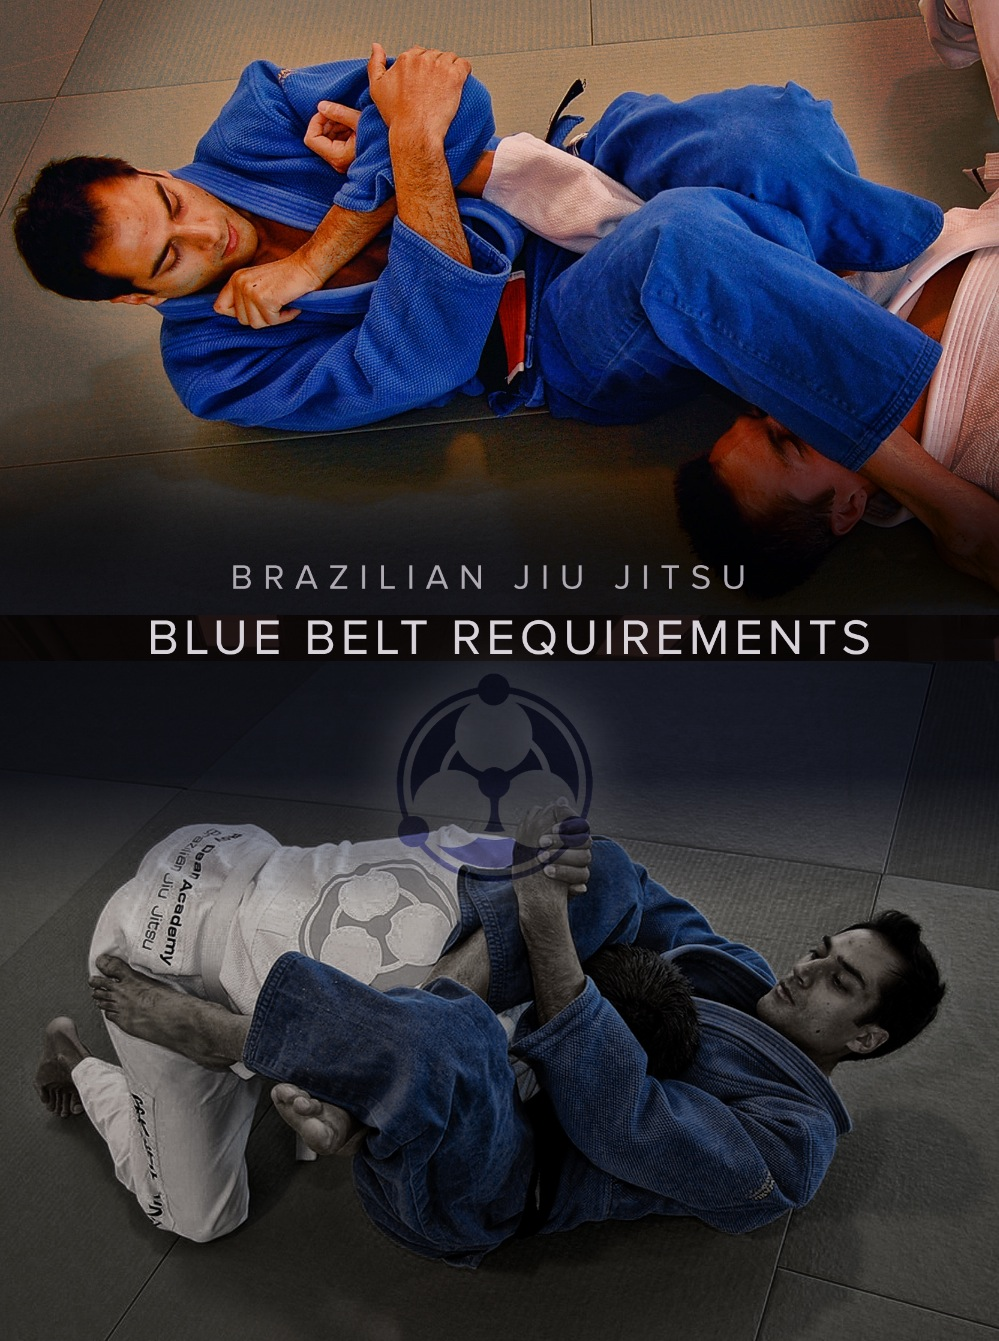 Brazilian Jiu Jitsu Blue Belt Requirements 1.0